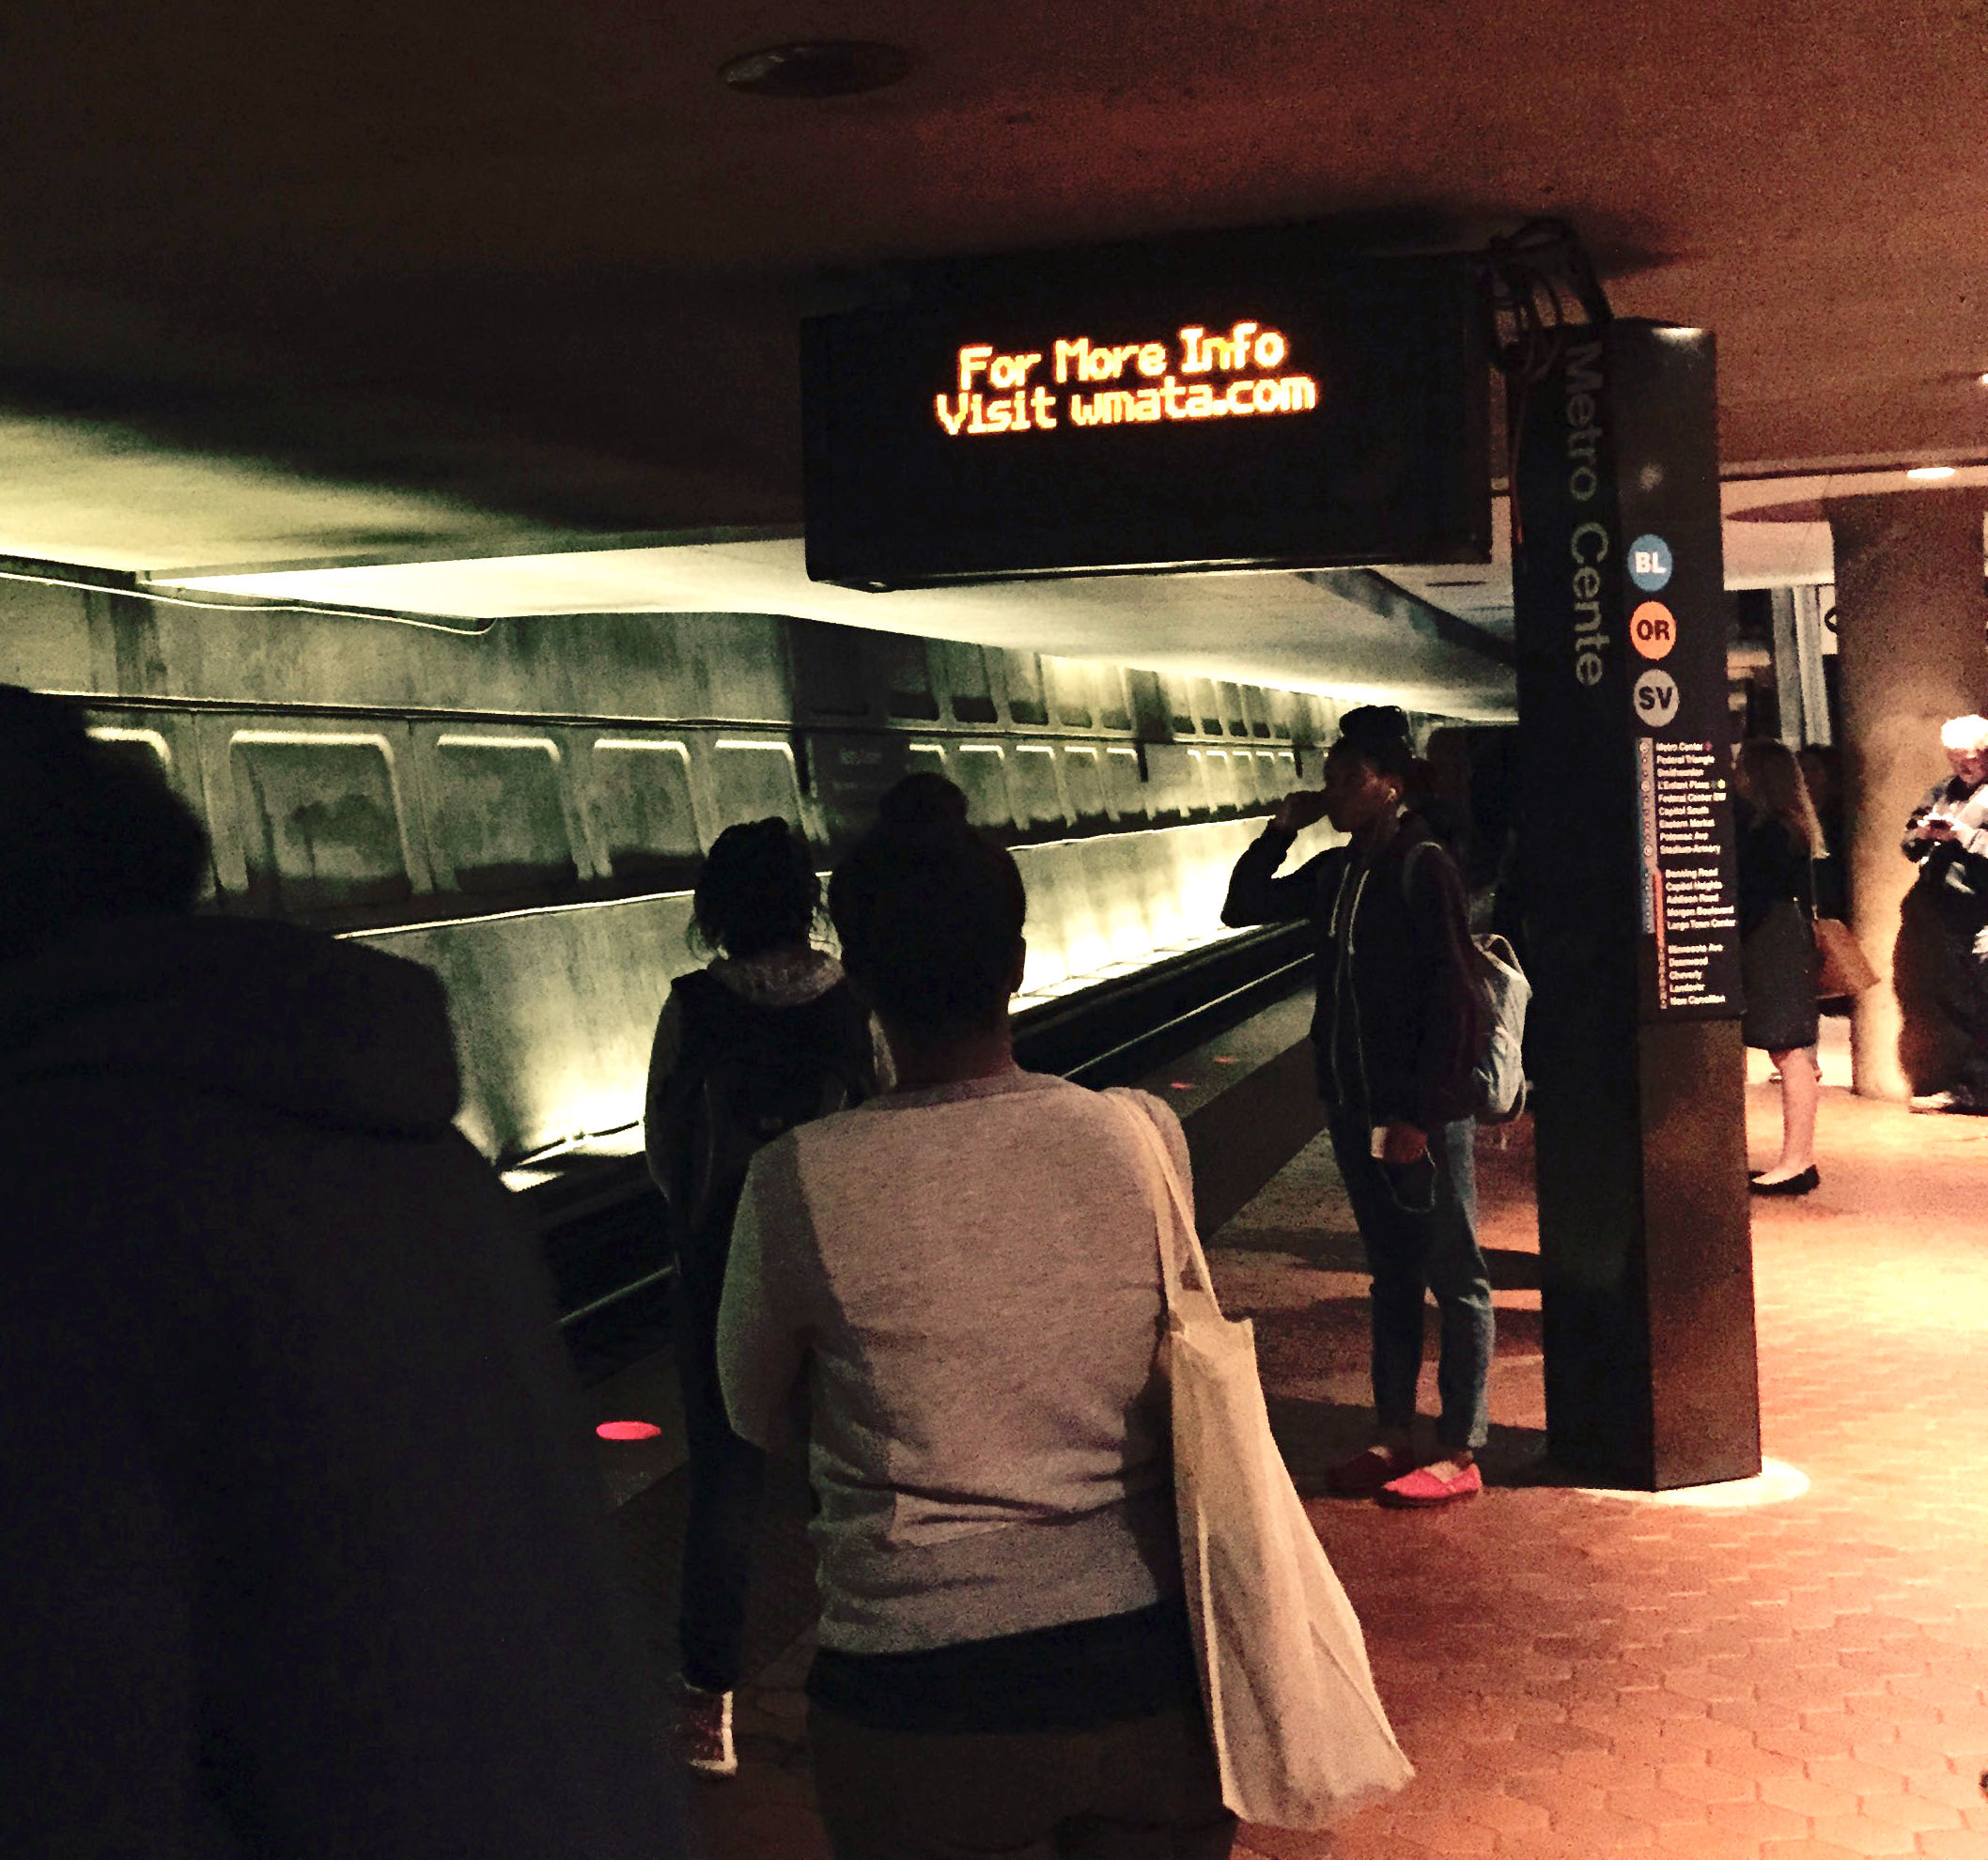 Metro riders group calls for refunds for extreme delays